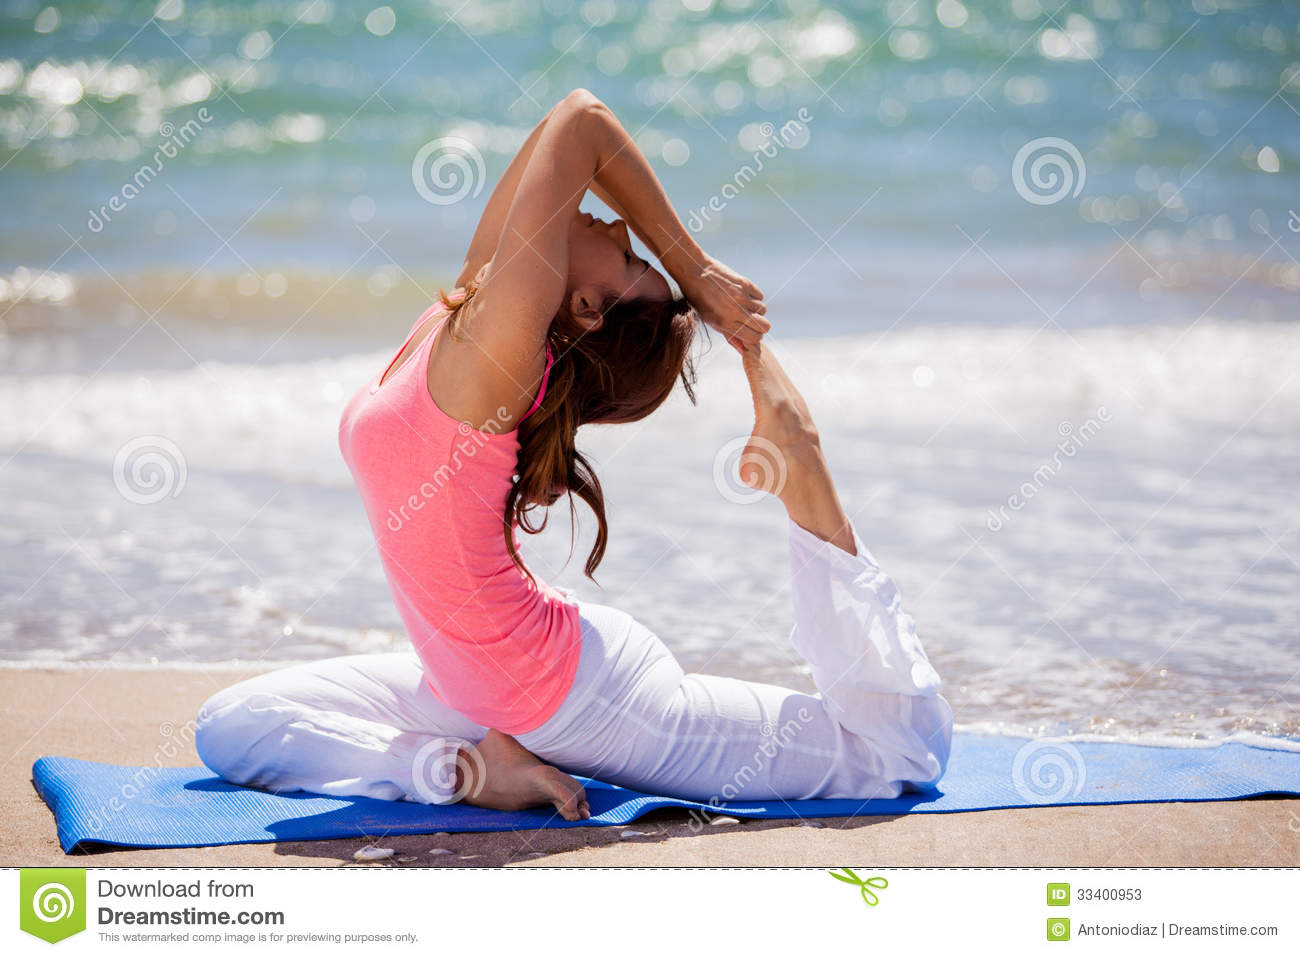 Trying Some Yoga Poses At The Beach Stock Photos Image 33400953